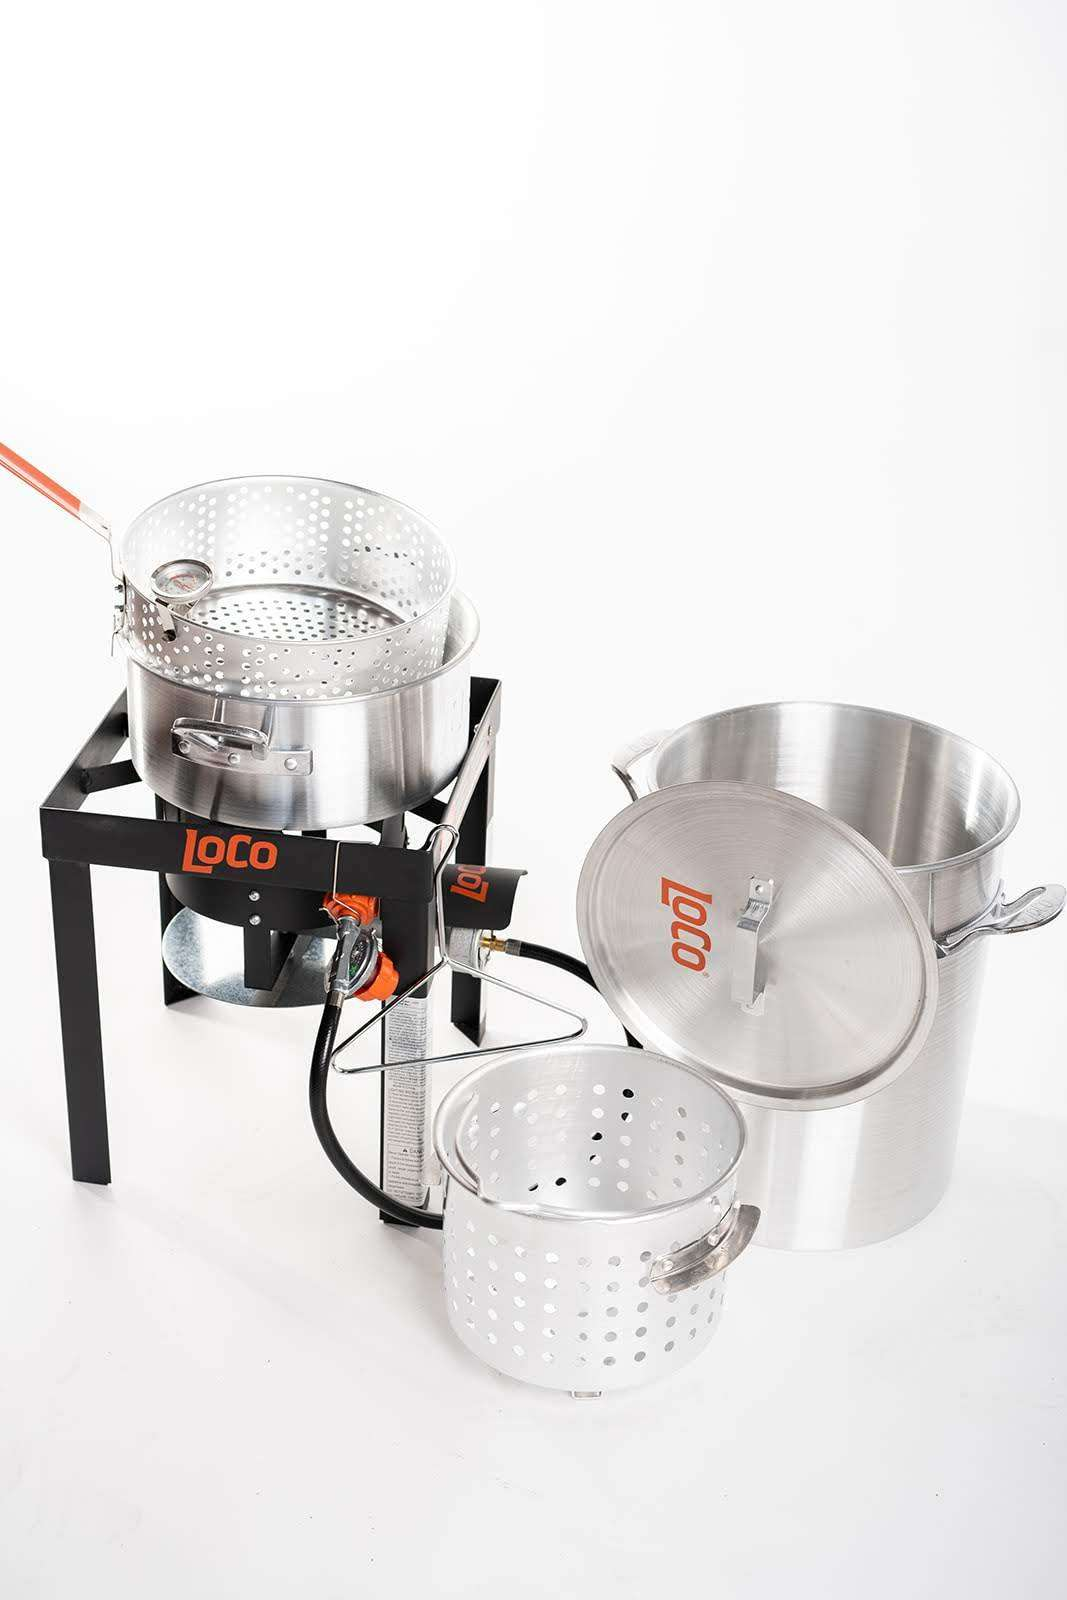 30 QT Boil Fry Steam Kit With Stand - LoCo Cookers